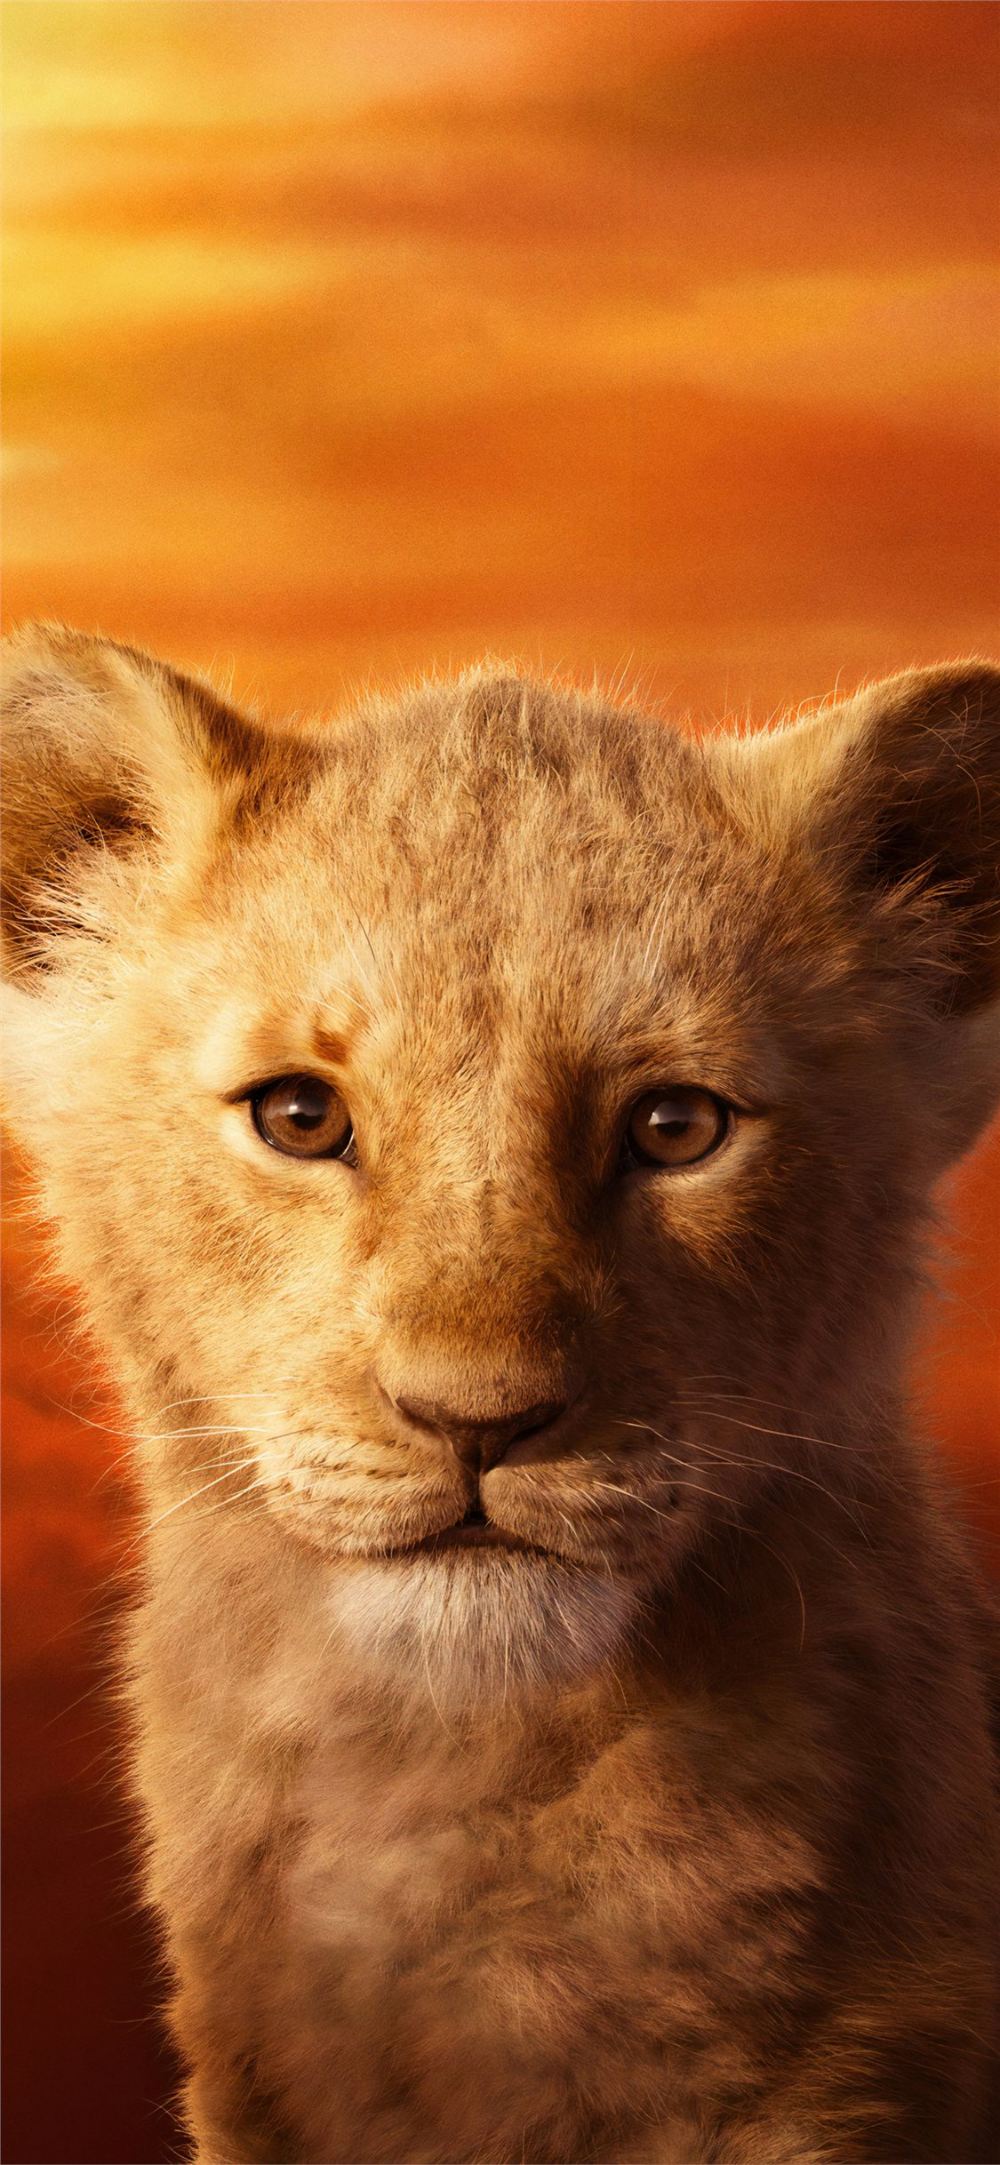 Free Download The Jd Mccrary As Simba The Lion King 2019 4k Wallpaper Beaty Your Iphone Movies Lion Lion King Pictures Lion King Poster Disney Lion King